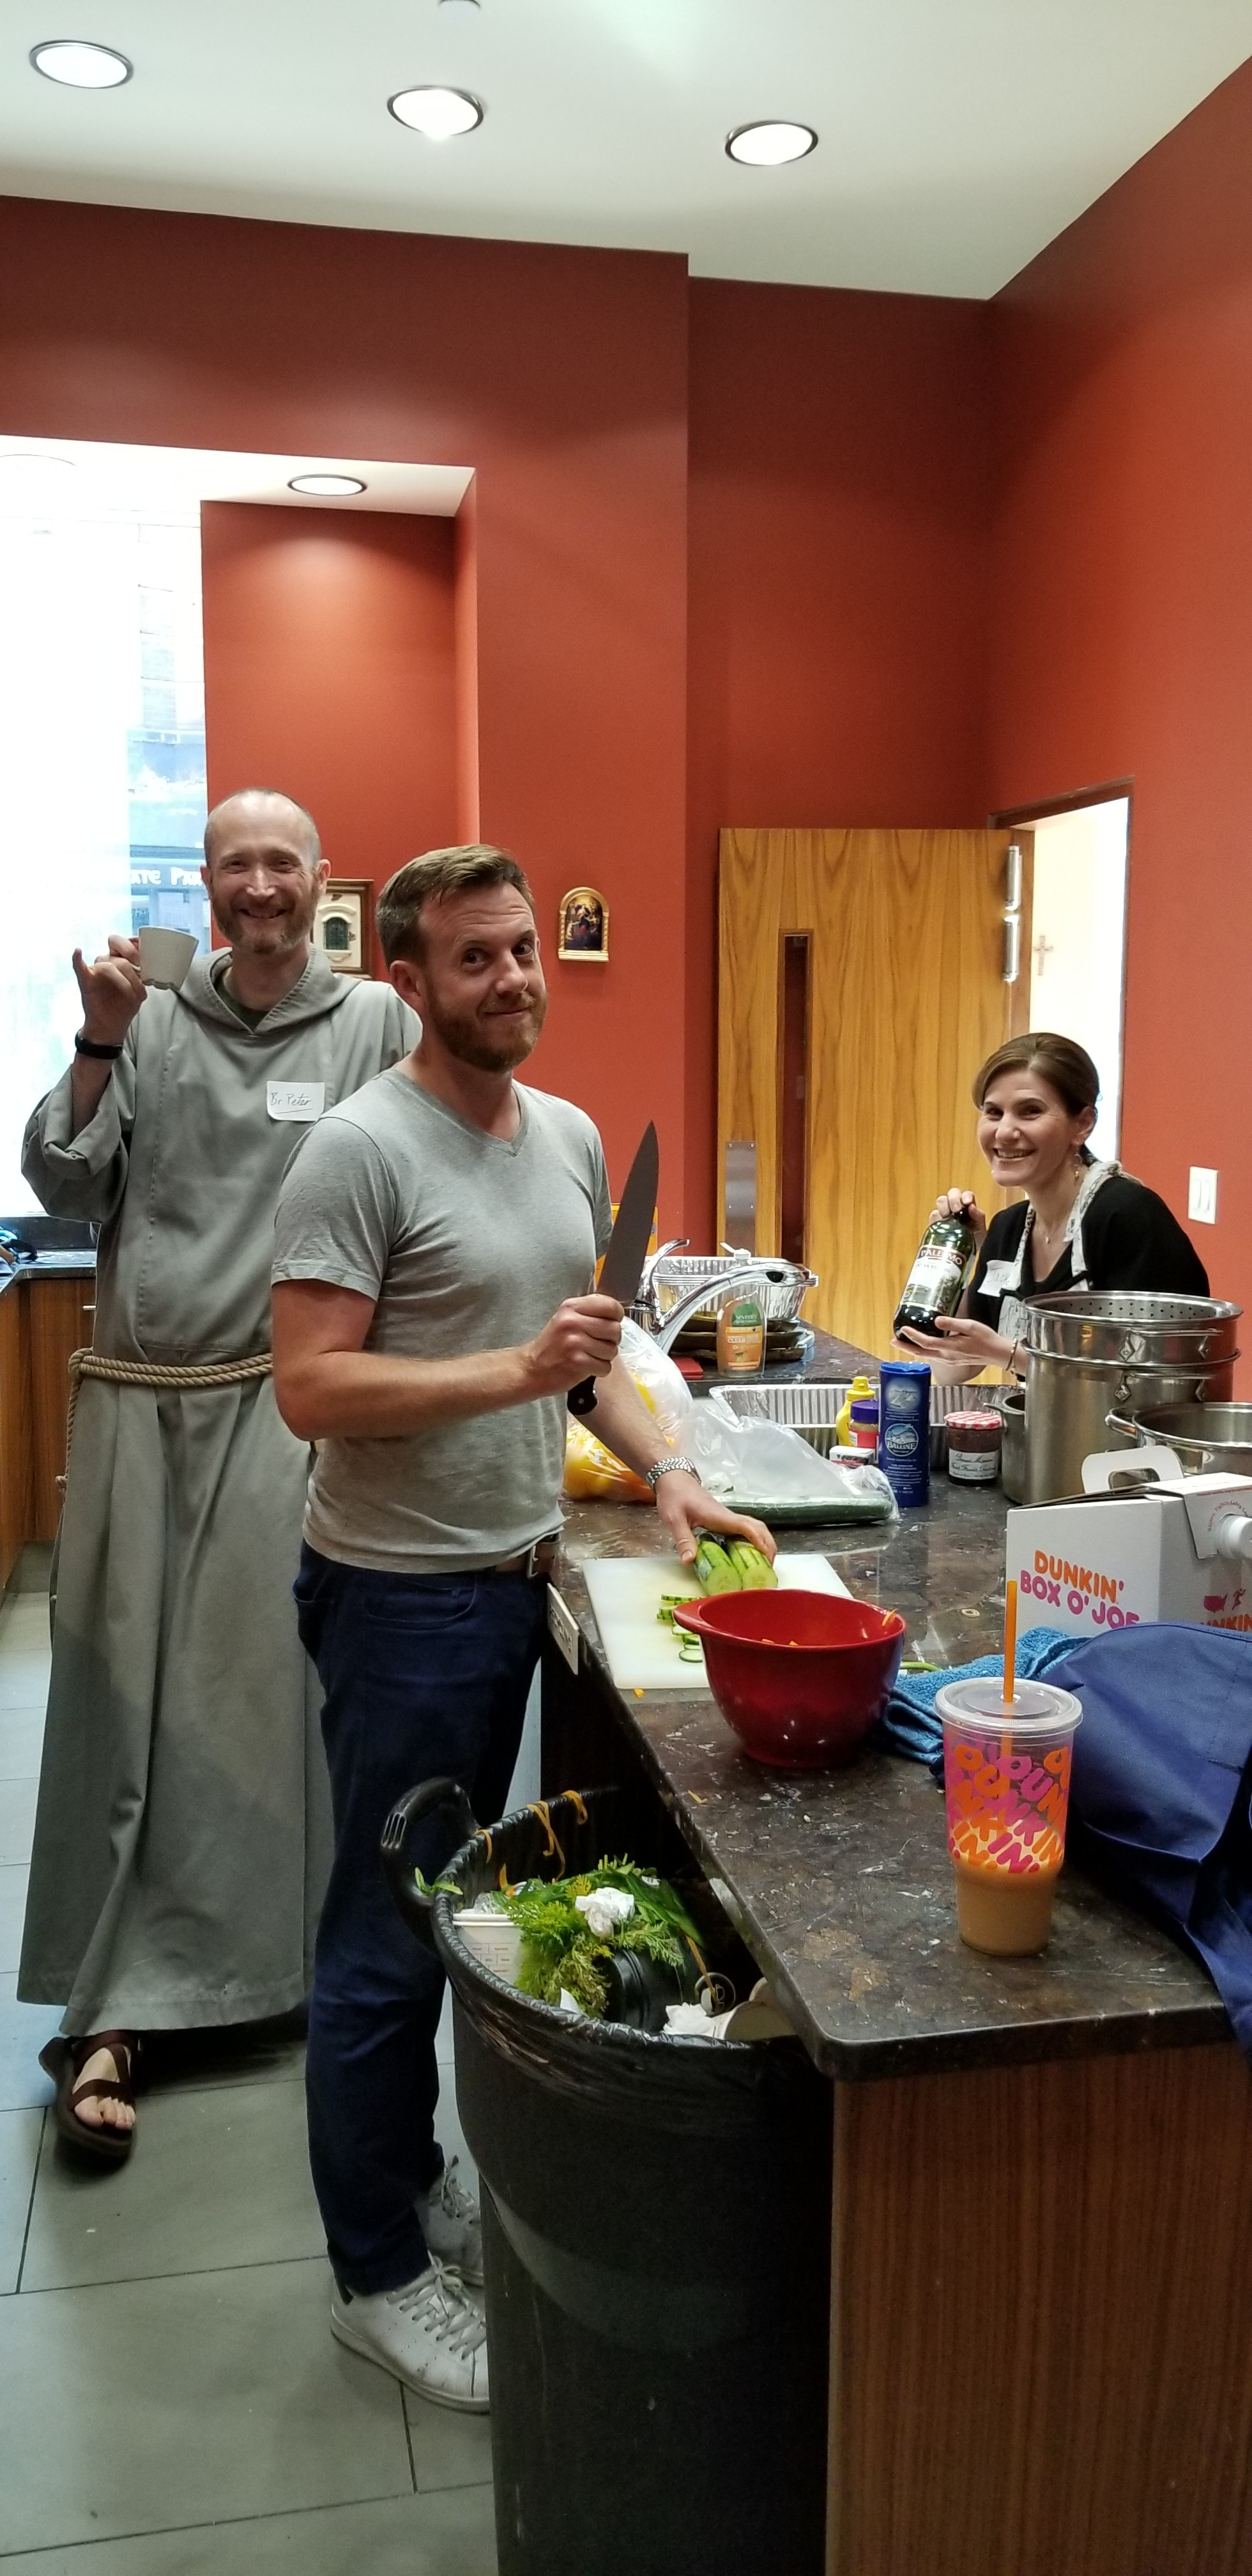 Here's the team working and…having fun in the kitchen!